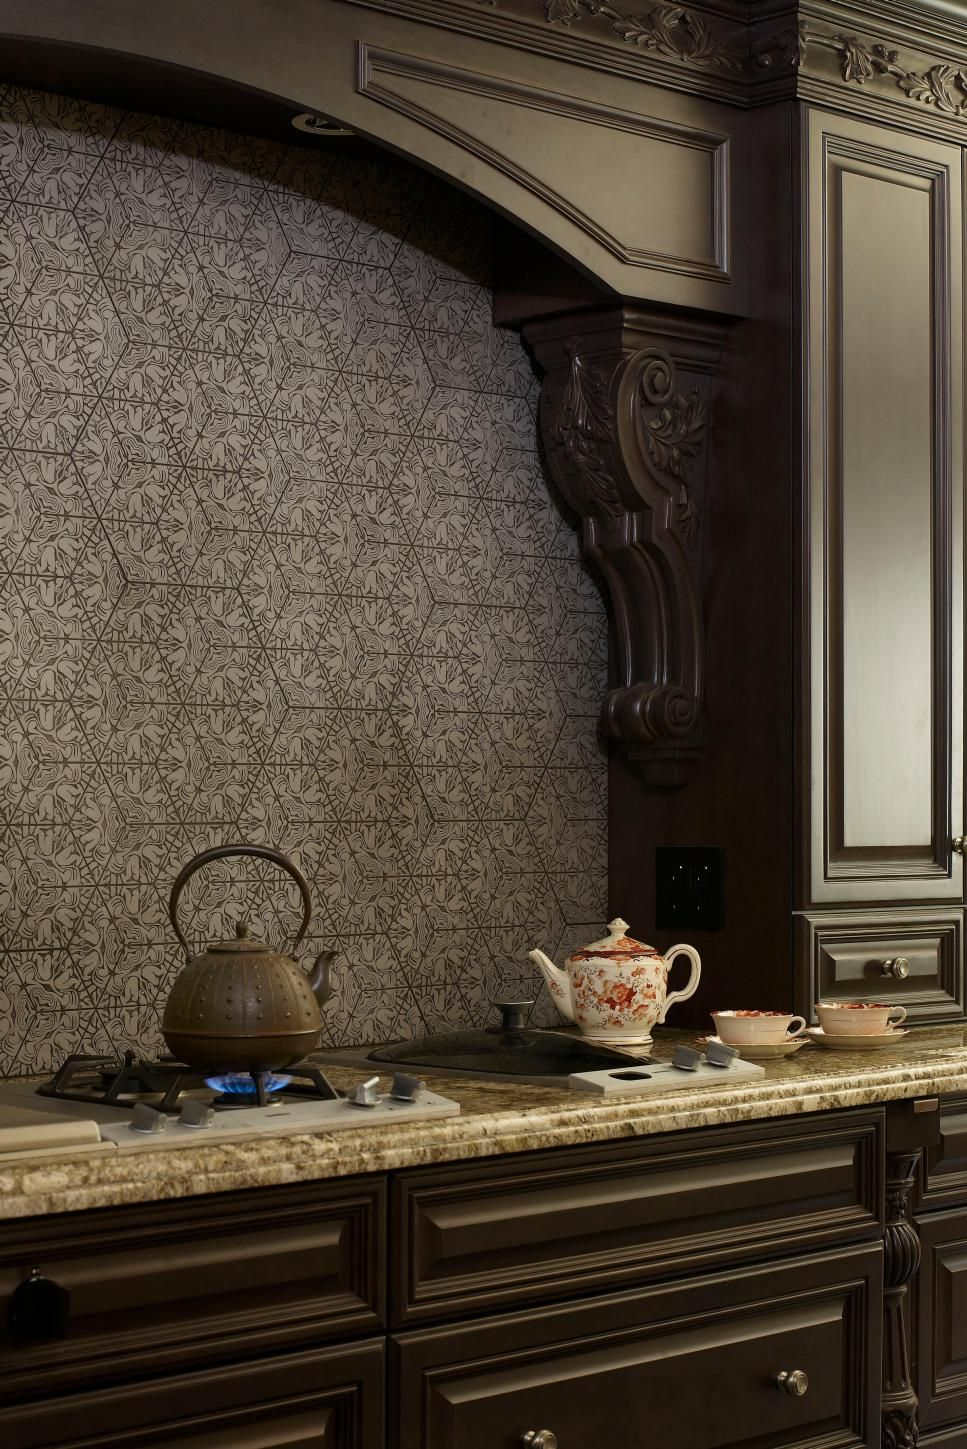 - Stamped Concrete In Rune Pattern For Backsplash? (With Images